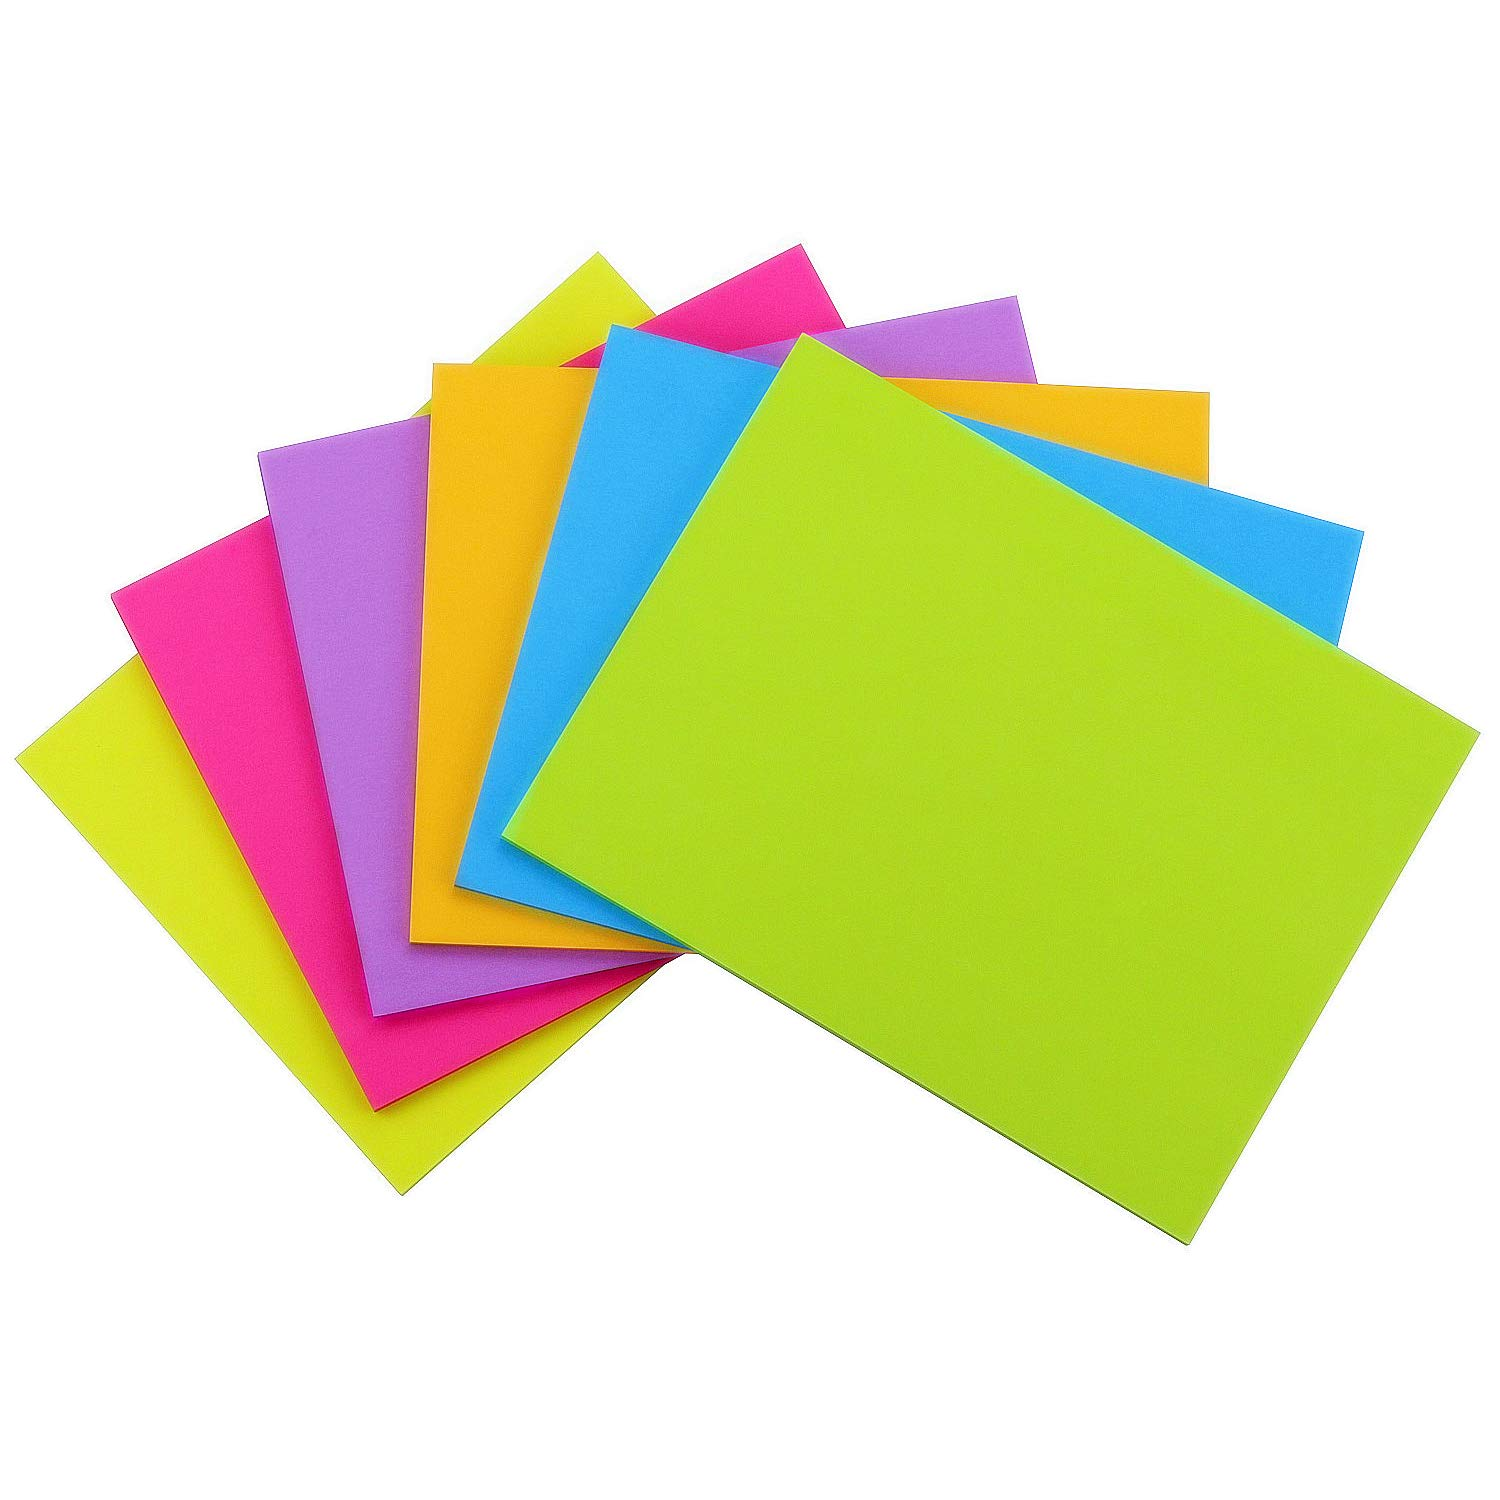 Early Buy Sticky Notes 6 Bright Color 12 Pads Self-Stick Notes 8 in x 6 in, 45 Sheets/Pad by Early Buy